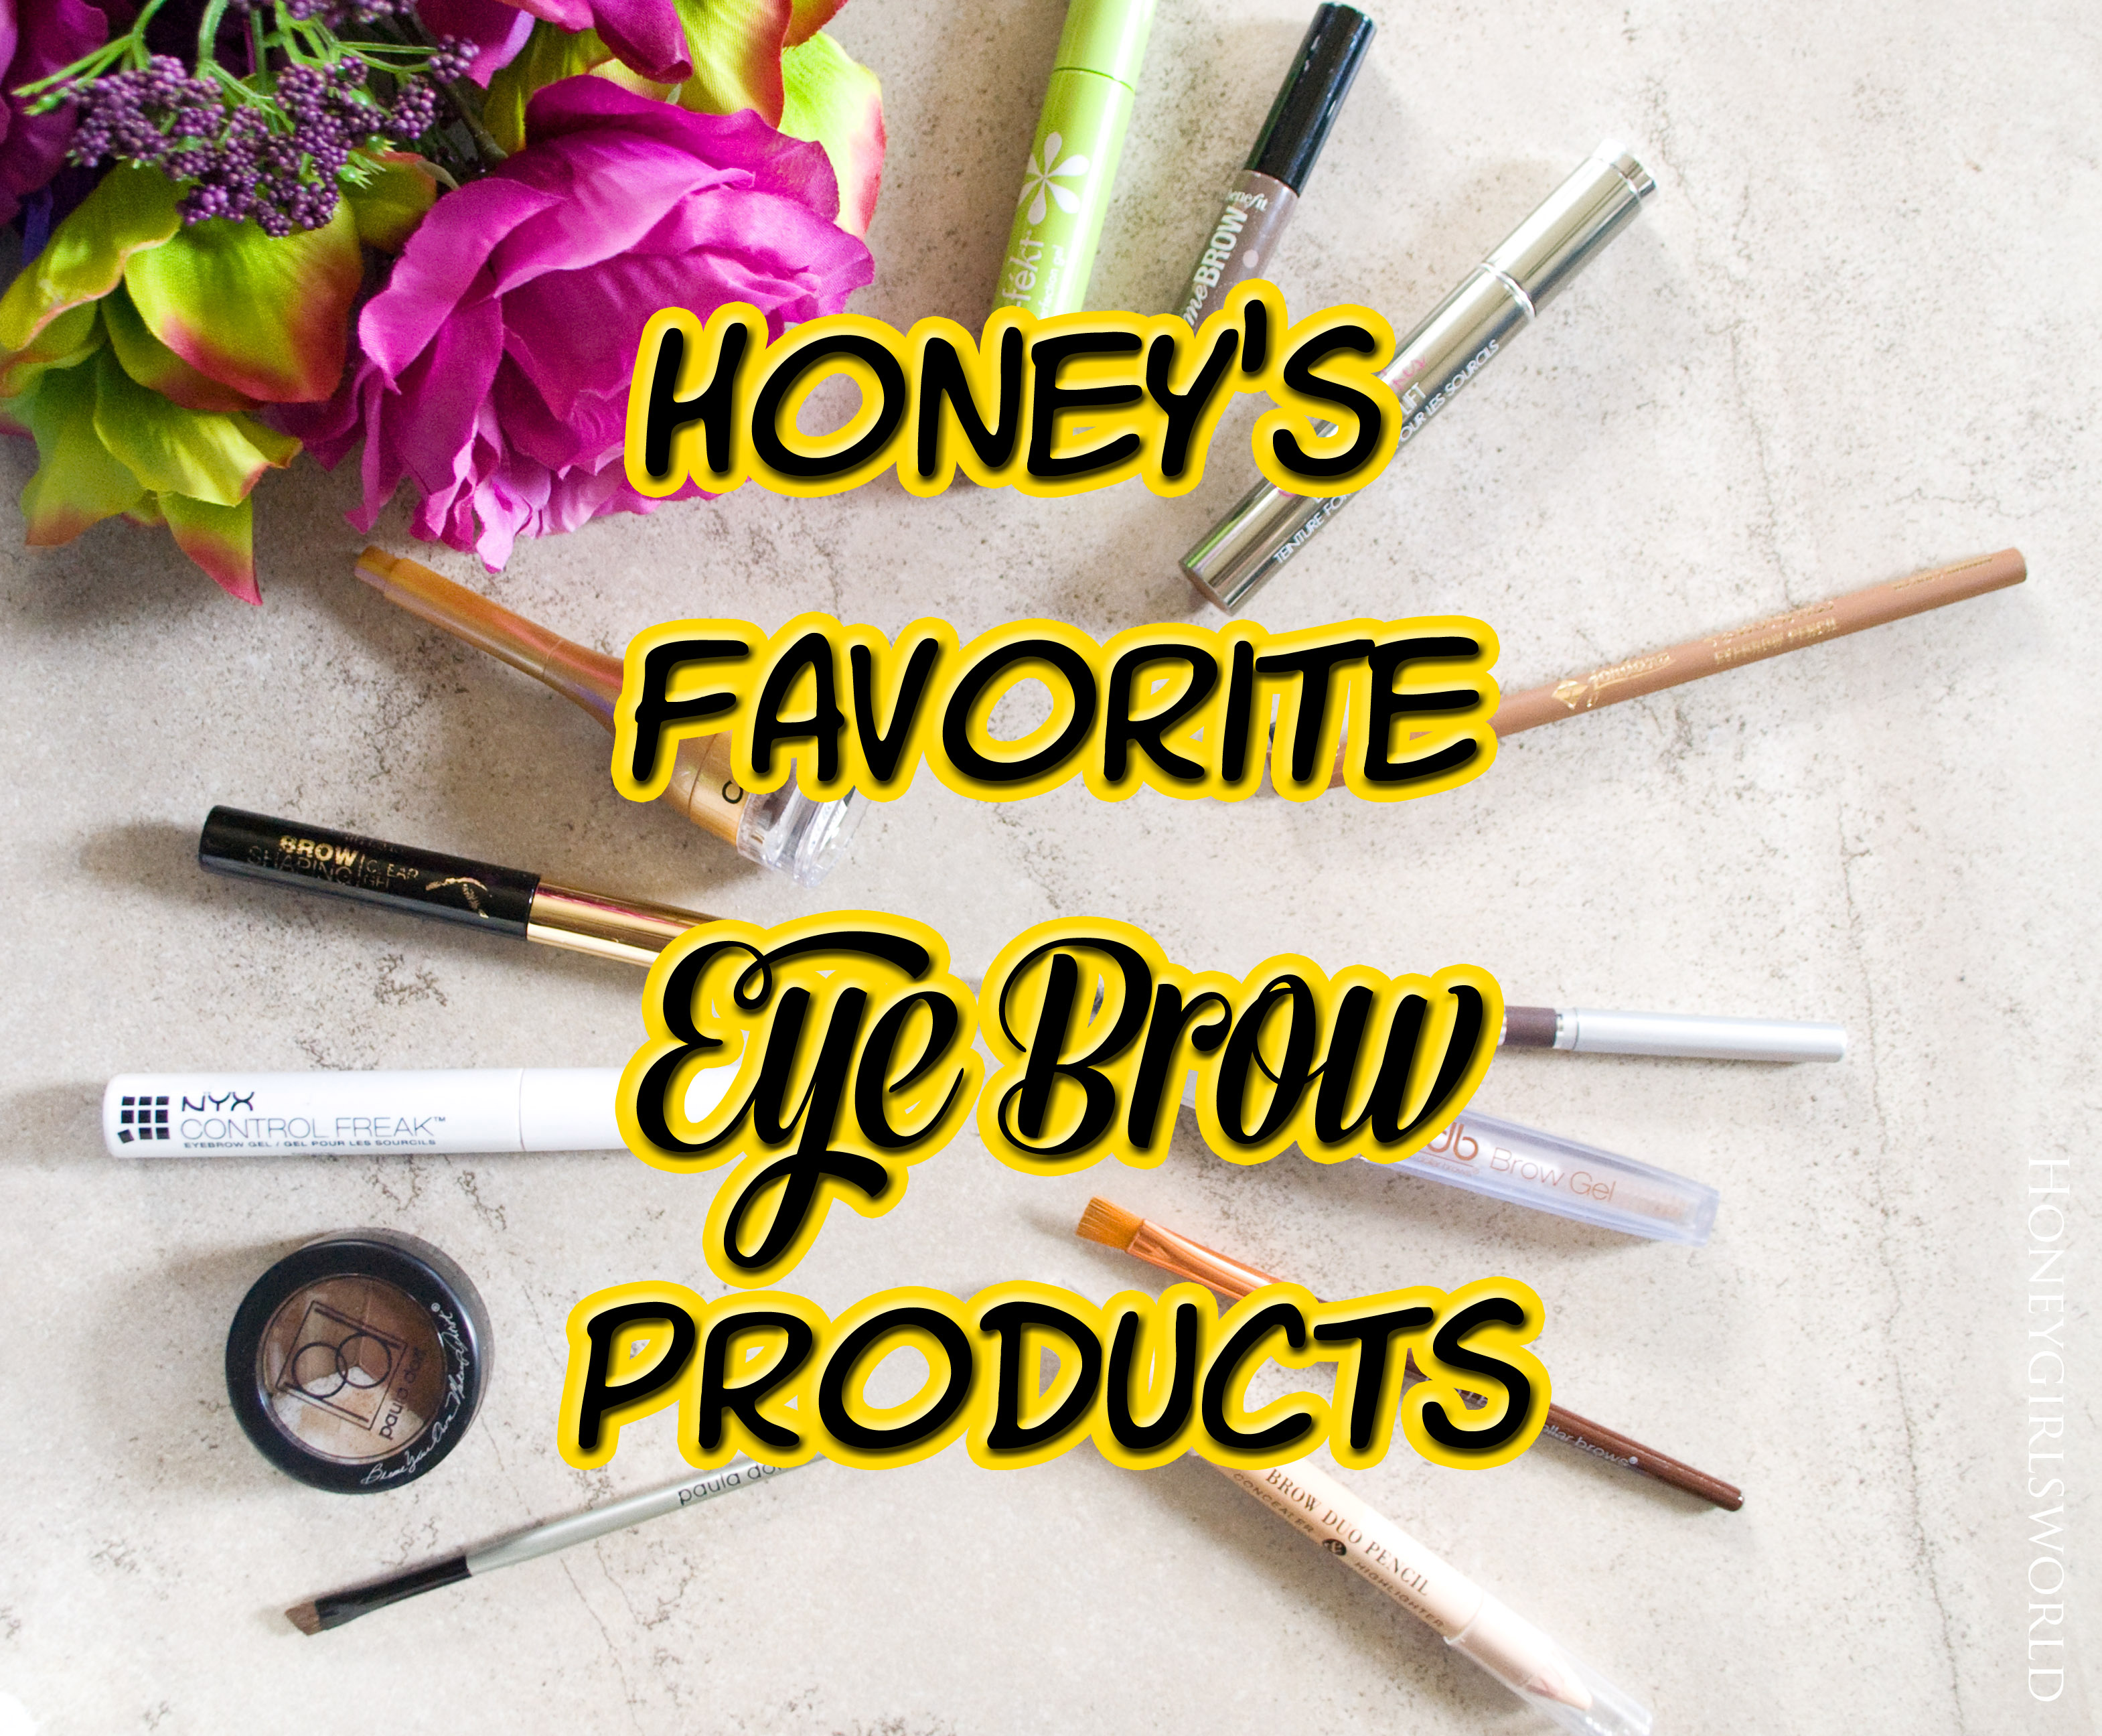 Honey's Favorite Eye Brow Products – Beauty Blogger Collaboration